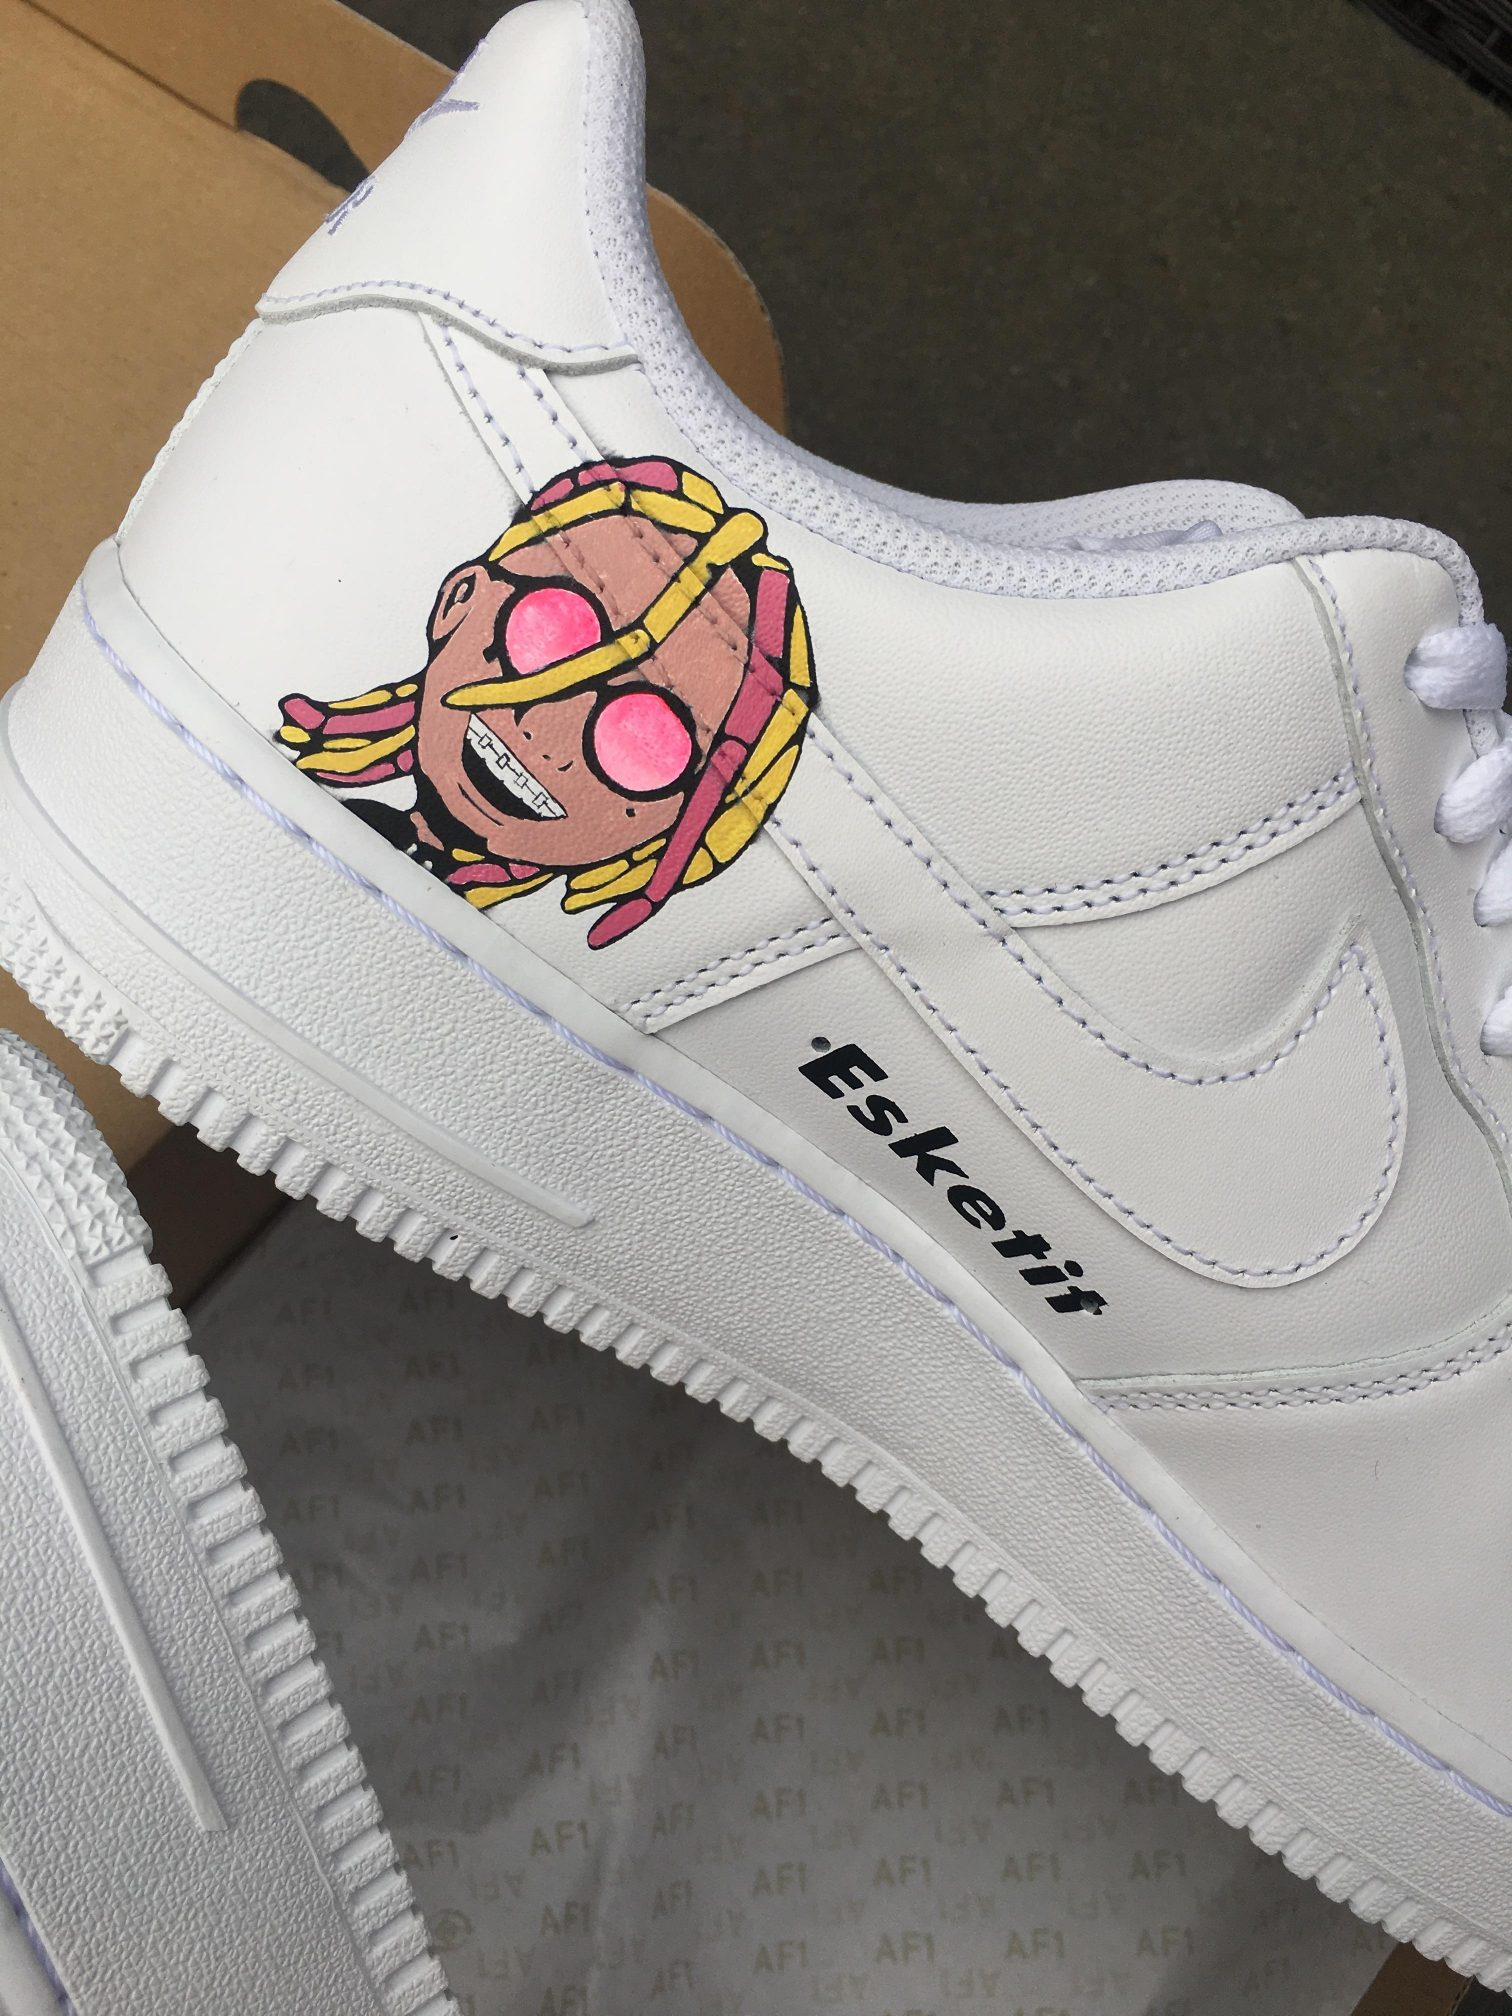 Custom Vans For Sale >> AF1 x 6ix9ine x Lil Pump - TA-Customs